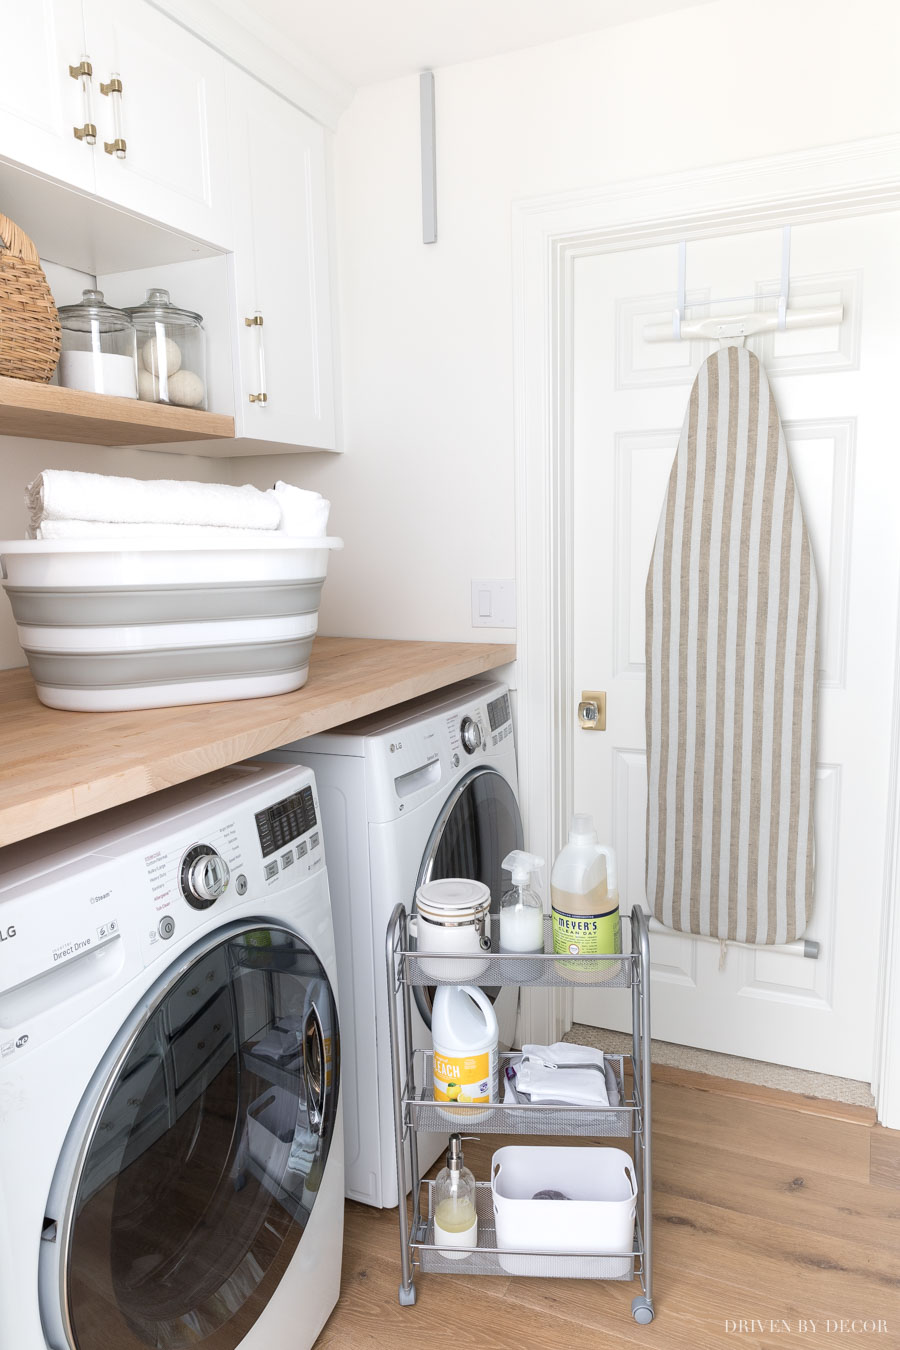 This rolling cart for between the washer and dryer is so smart! One of my favorite laundry room storage ideas!